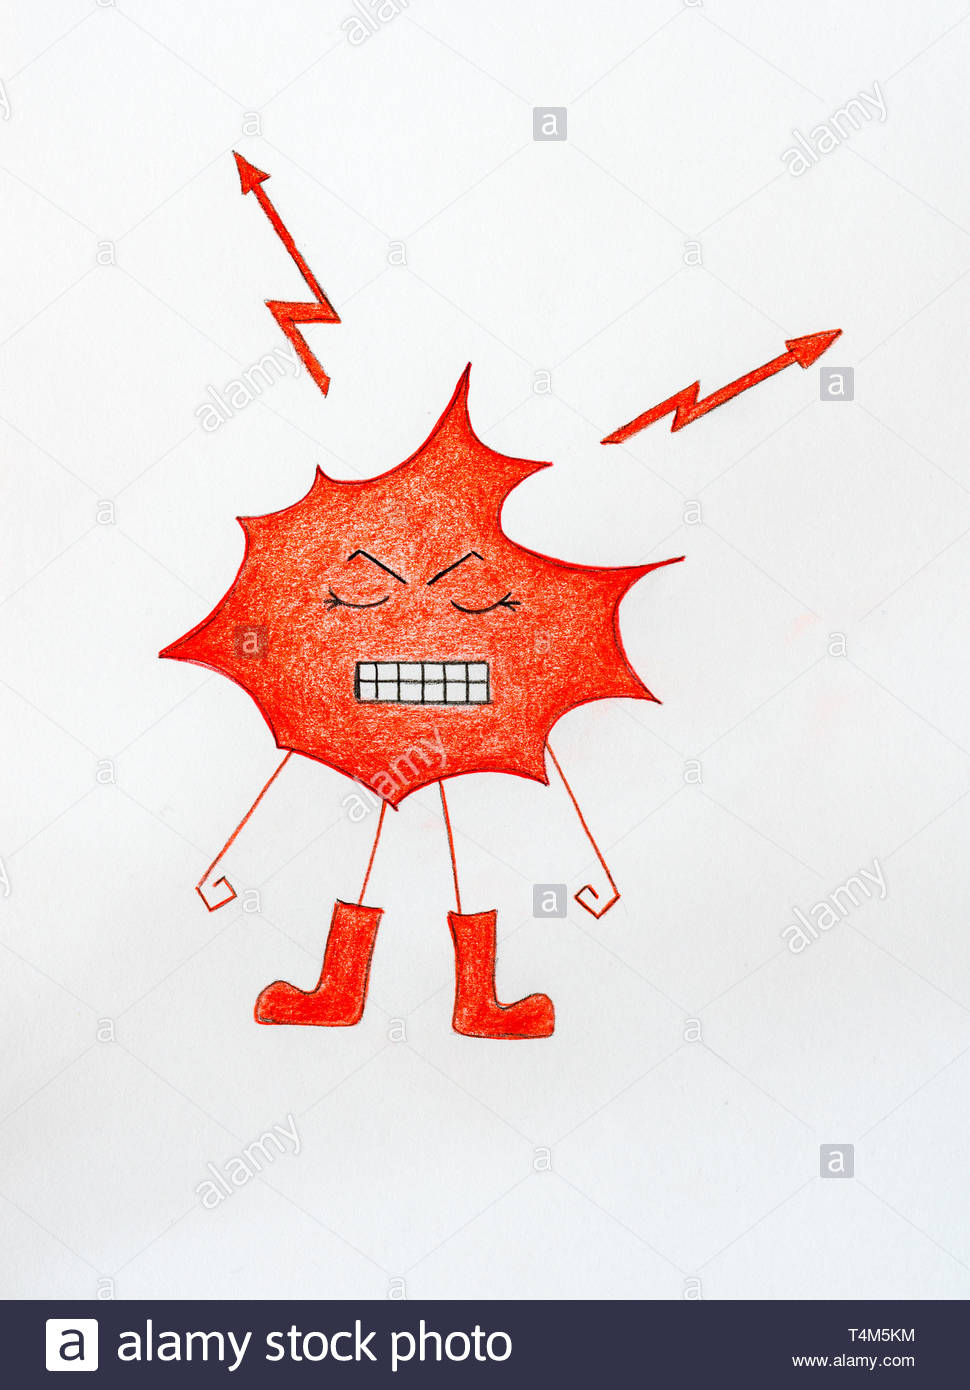 illustration of an angry red splash blob with lightning bolts and gritting teeth making fists - Stock Image